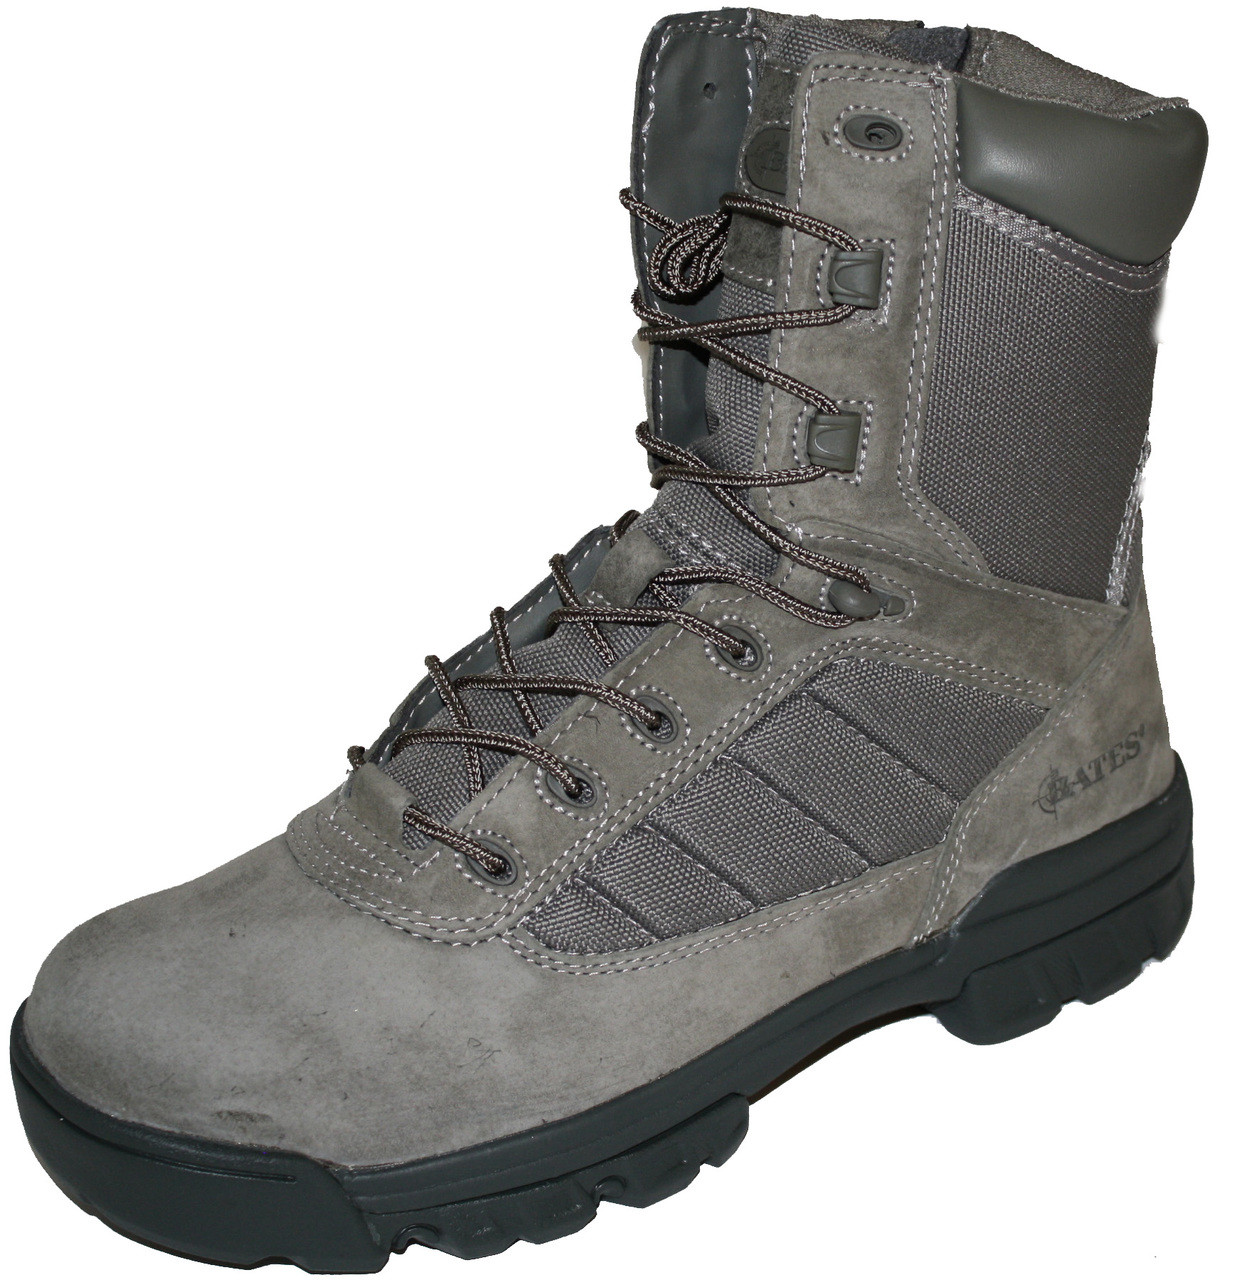 85638bcf6c1 Bates 4250-B Mens Ultra-Lites 8 Inches Tactical Sport Side-Zip Boot